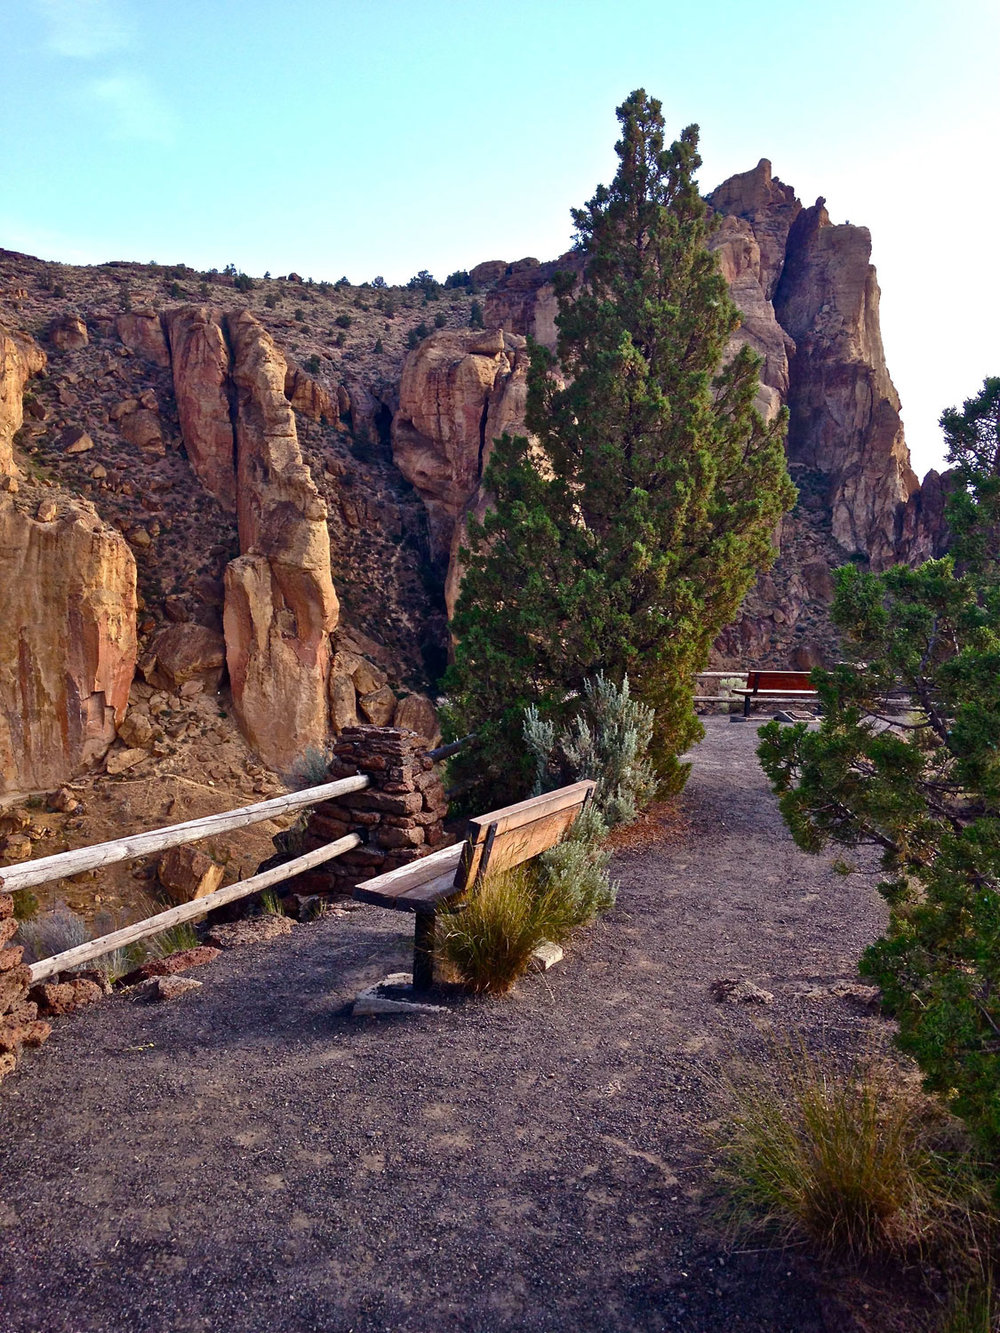 Viewing bench for seeing rock climbers, wildlife, mountain and canyon views along Rim Rock Trail at Smith Rock State Park.